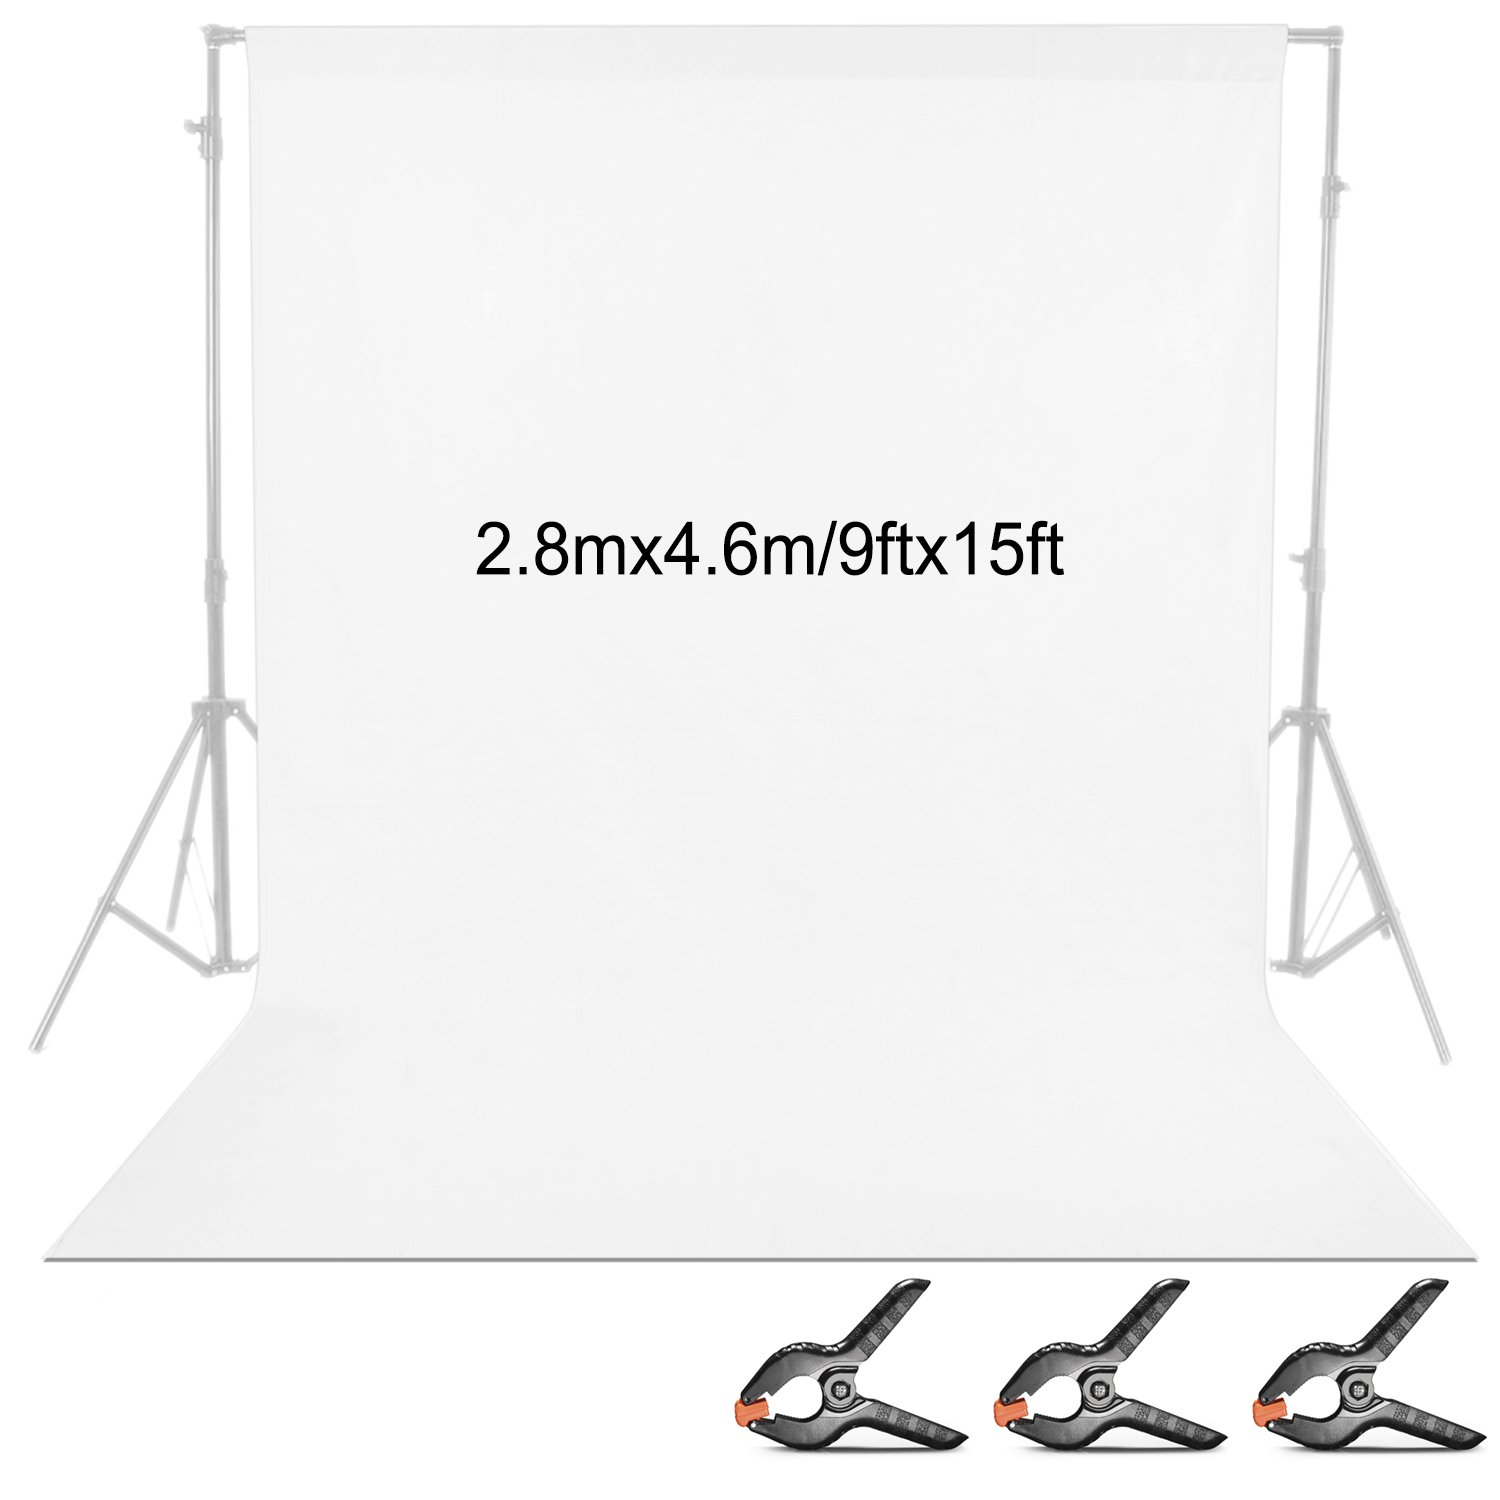 Neewer 9 x 15 feet/2.8 x 4.6 meters Fabric Photography Backdrop Background Screen with 3 Clamps for Photo Video Studio Shooting (White) by Neewer